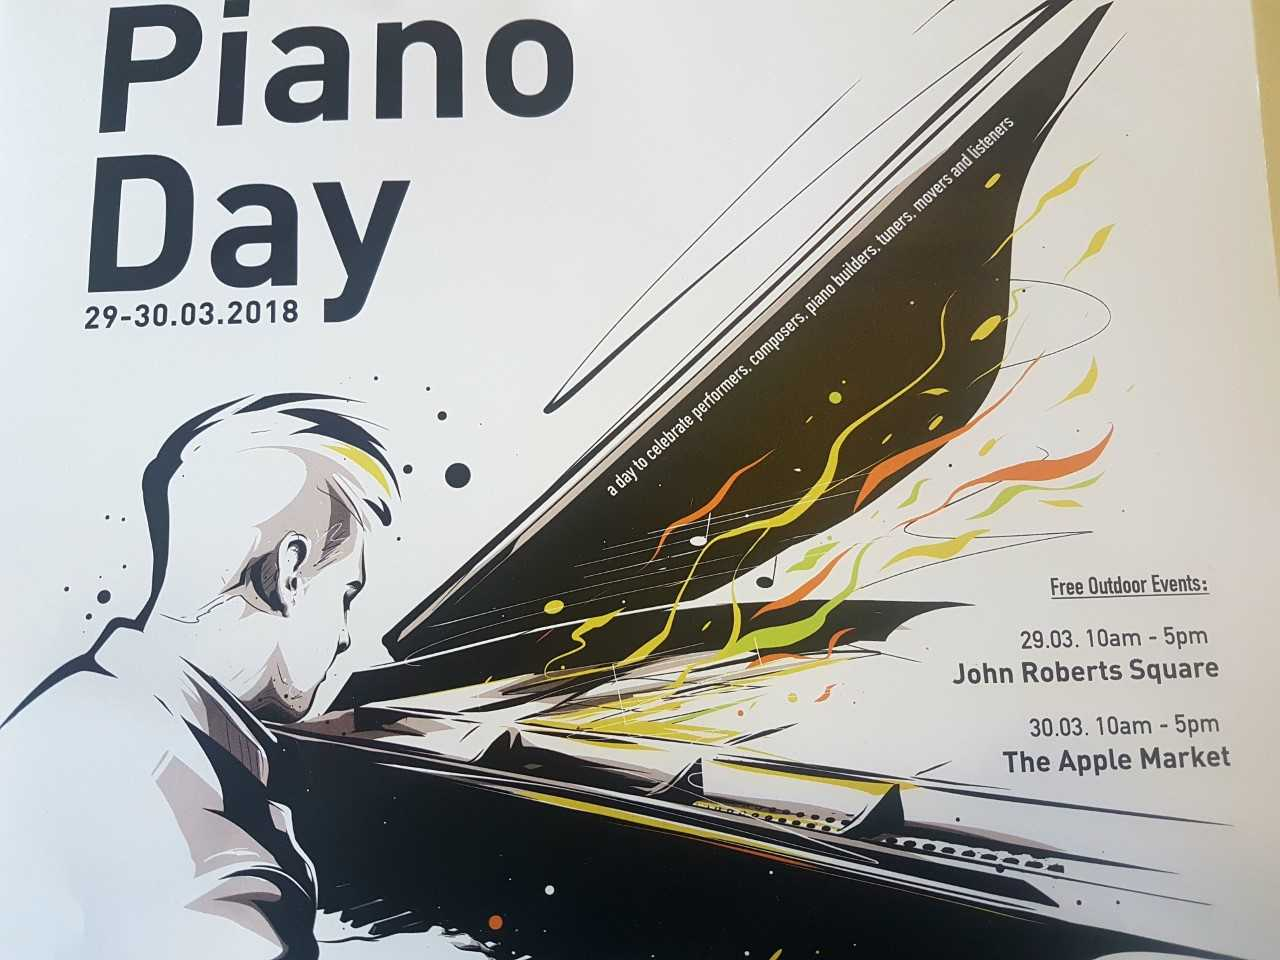 Listen: Plenty of events await lovers of the piano at the end of March